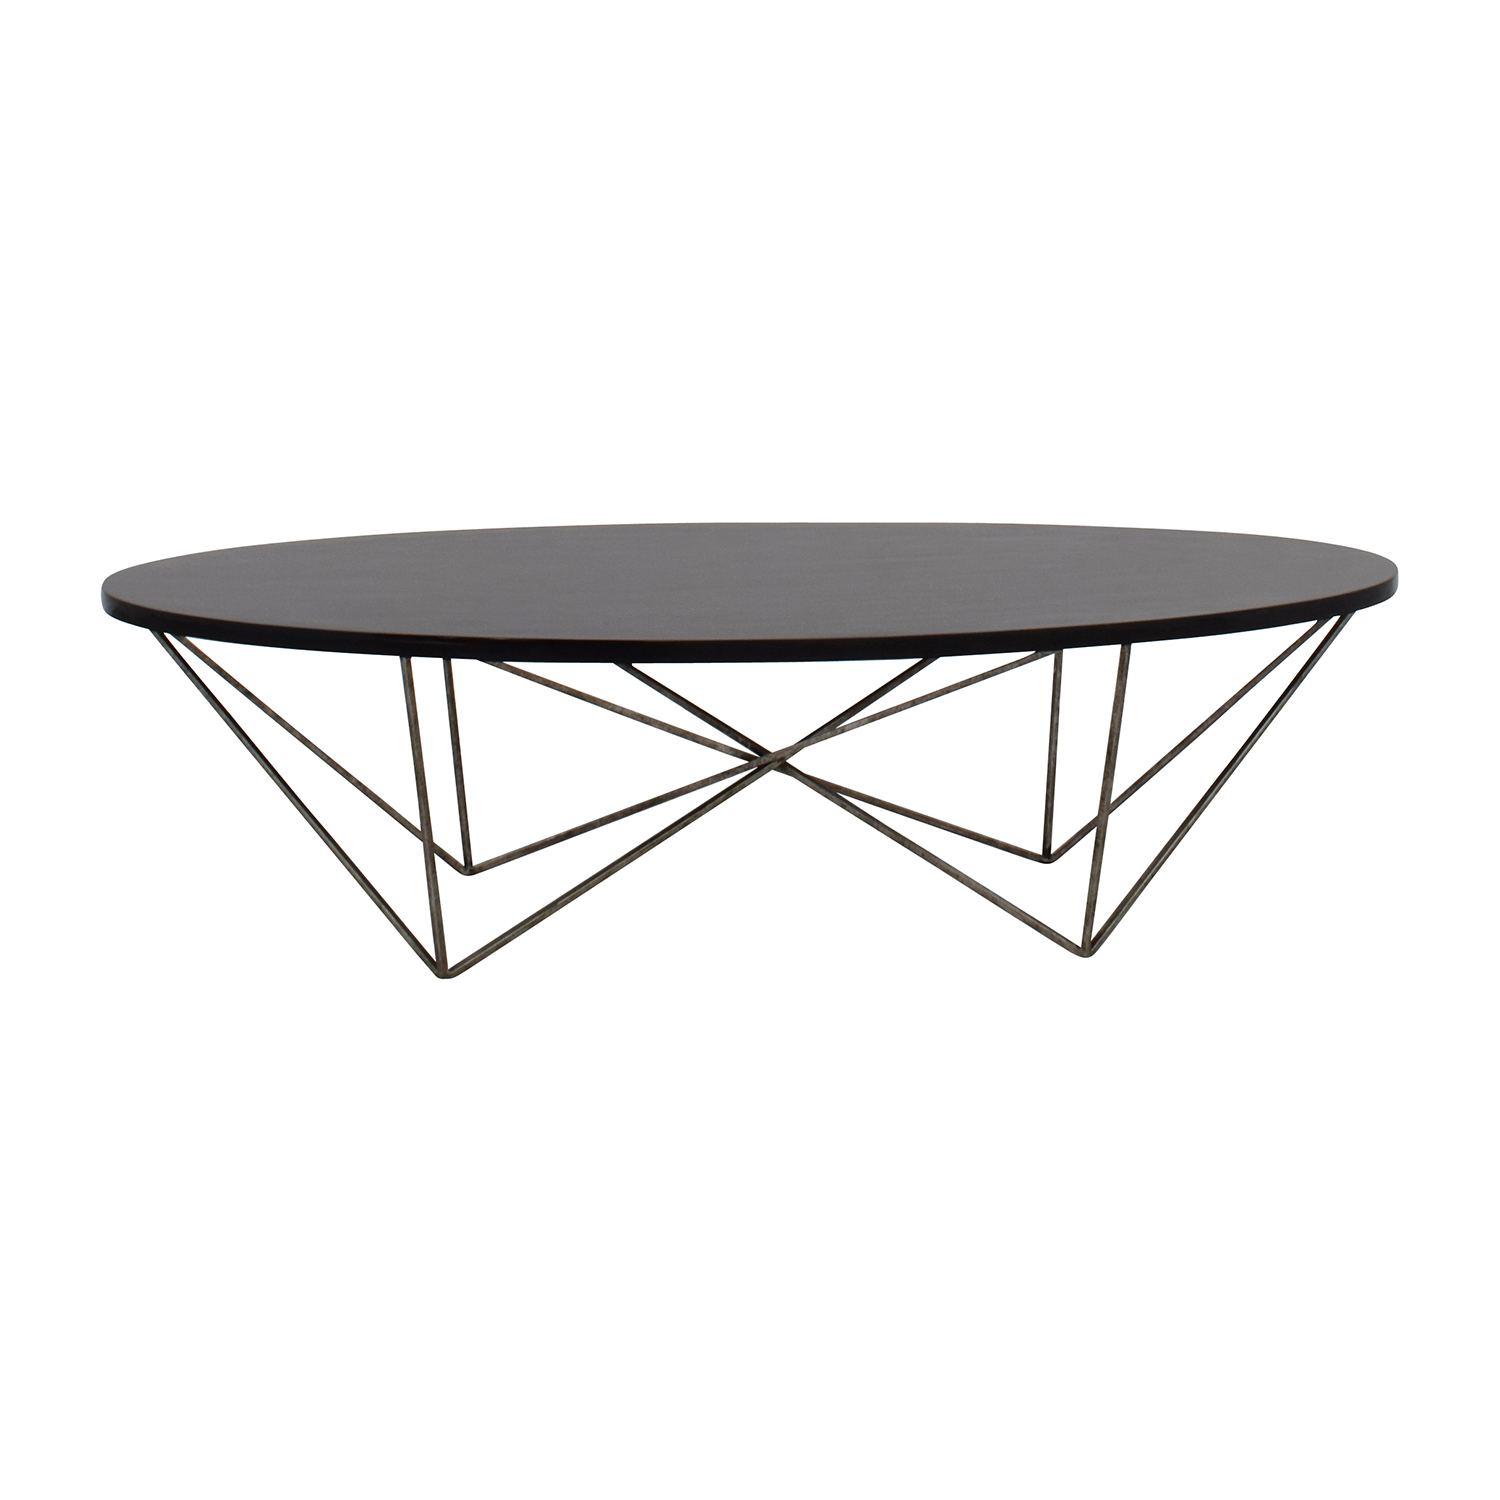 1500x1500 Table Drawing End Table For Free Download